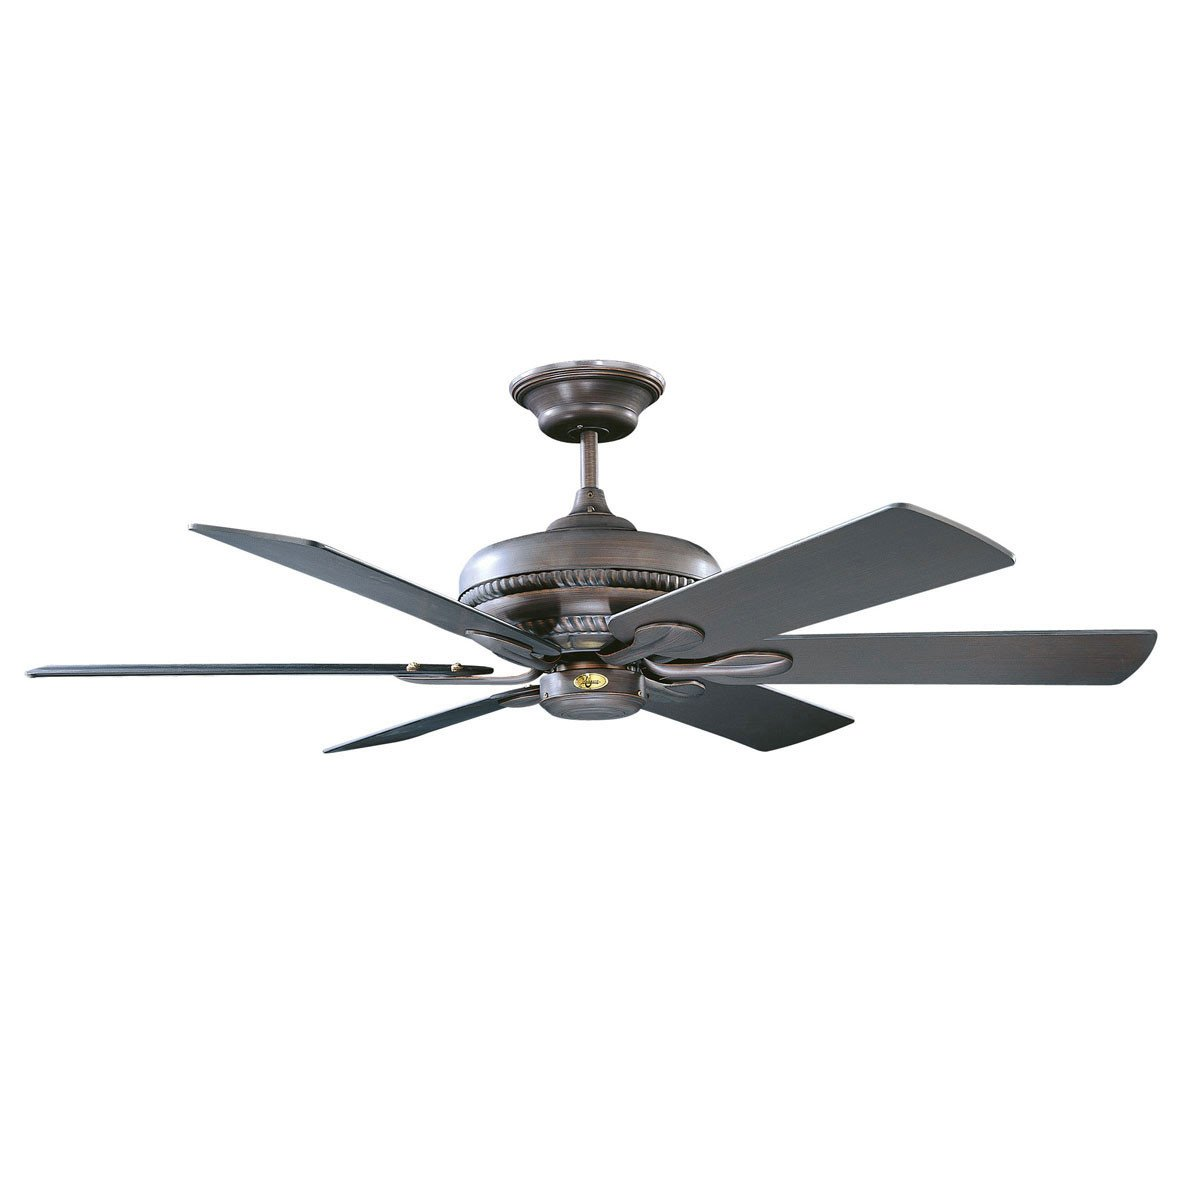 "Concord Fans 52"" Capetown Modern Oil Rubbed Bronze Ceiling Fan with Up-Lights"